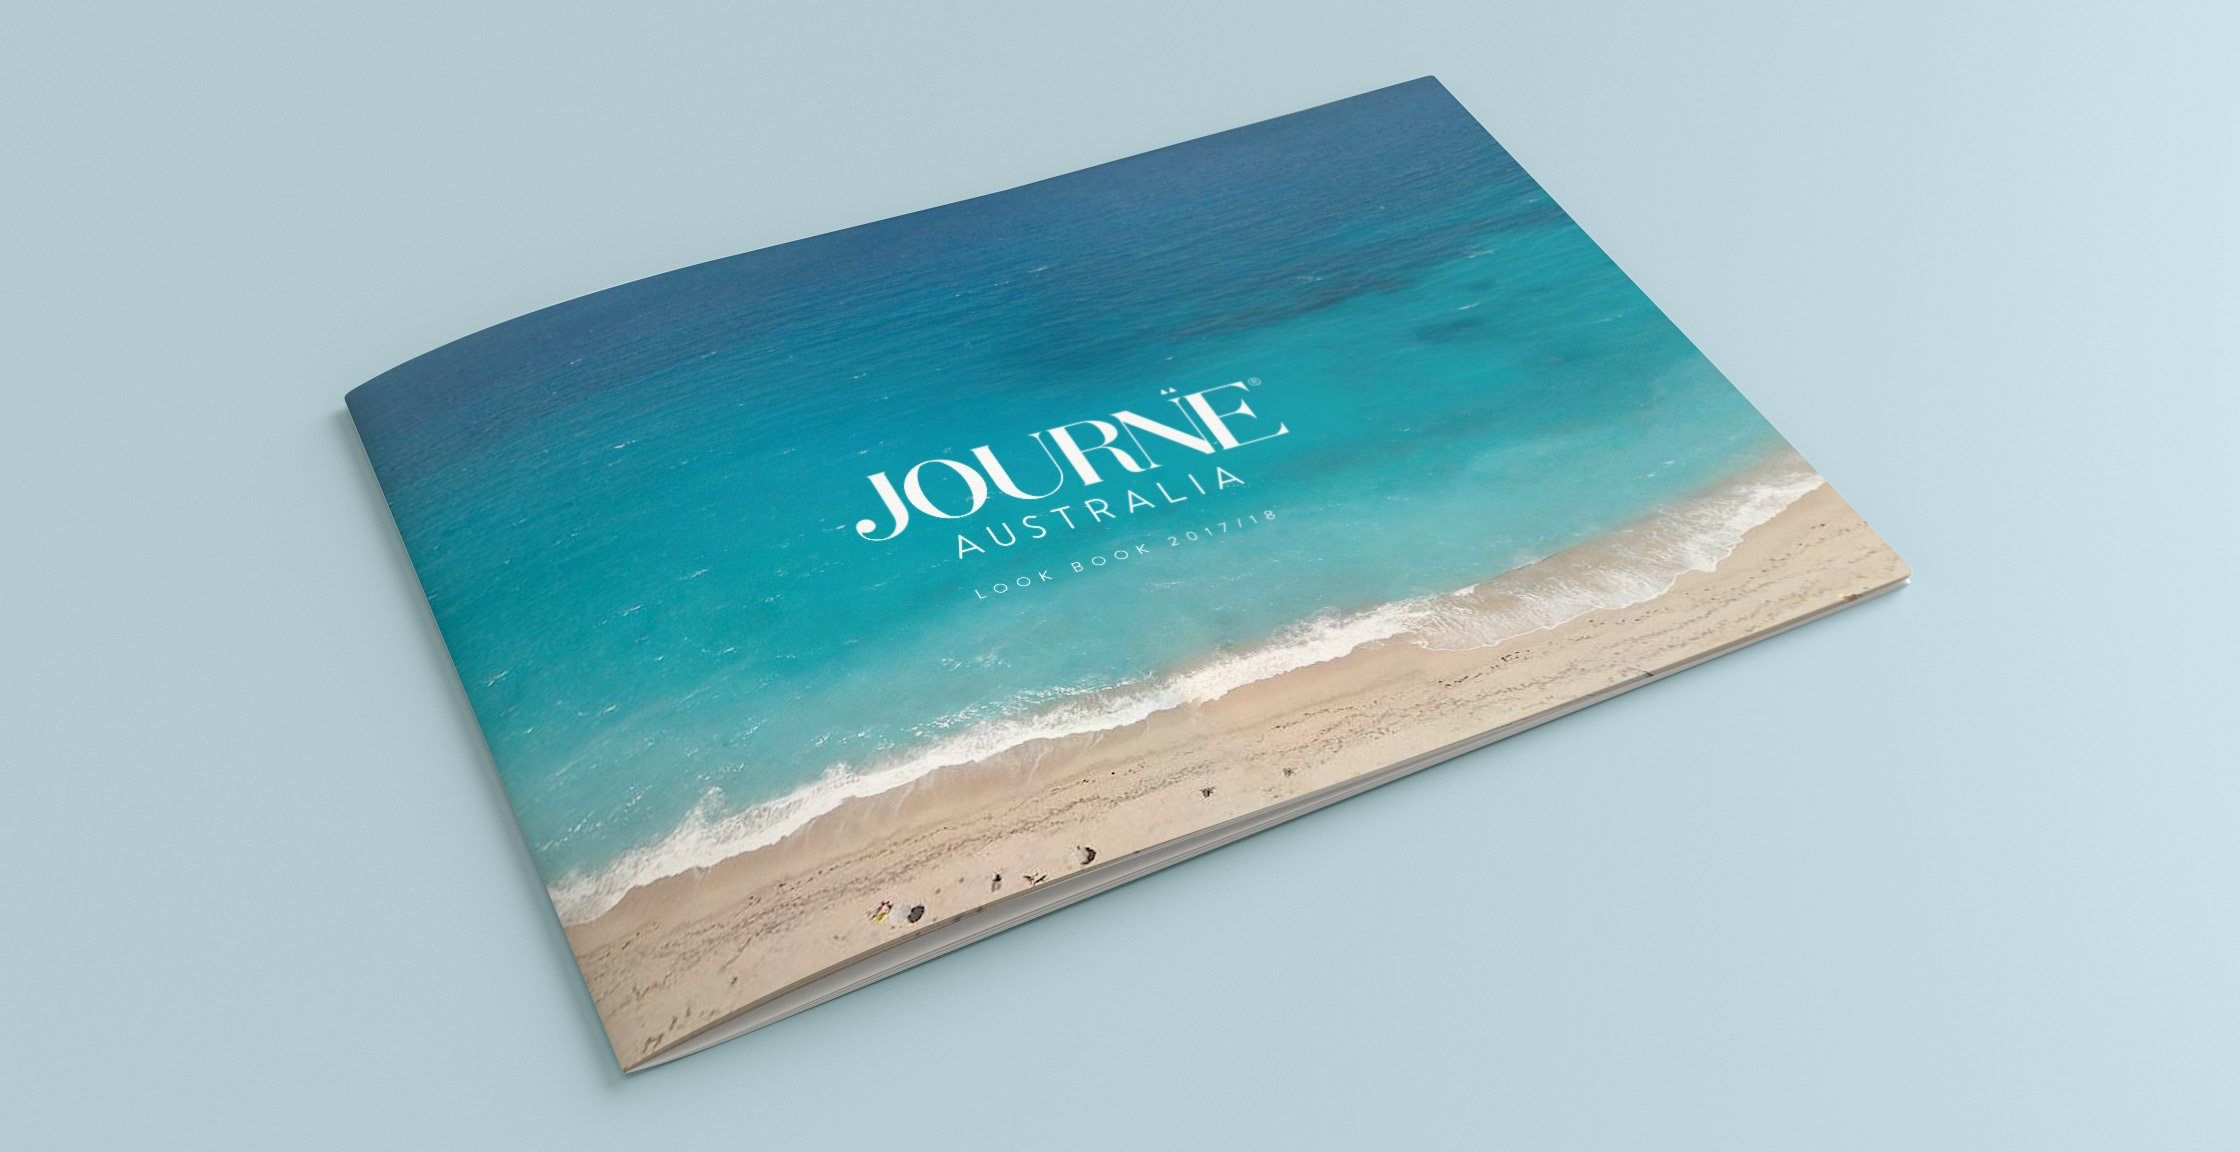 Journe Lookbook